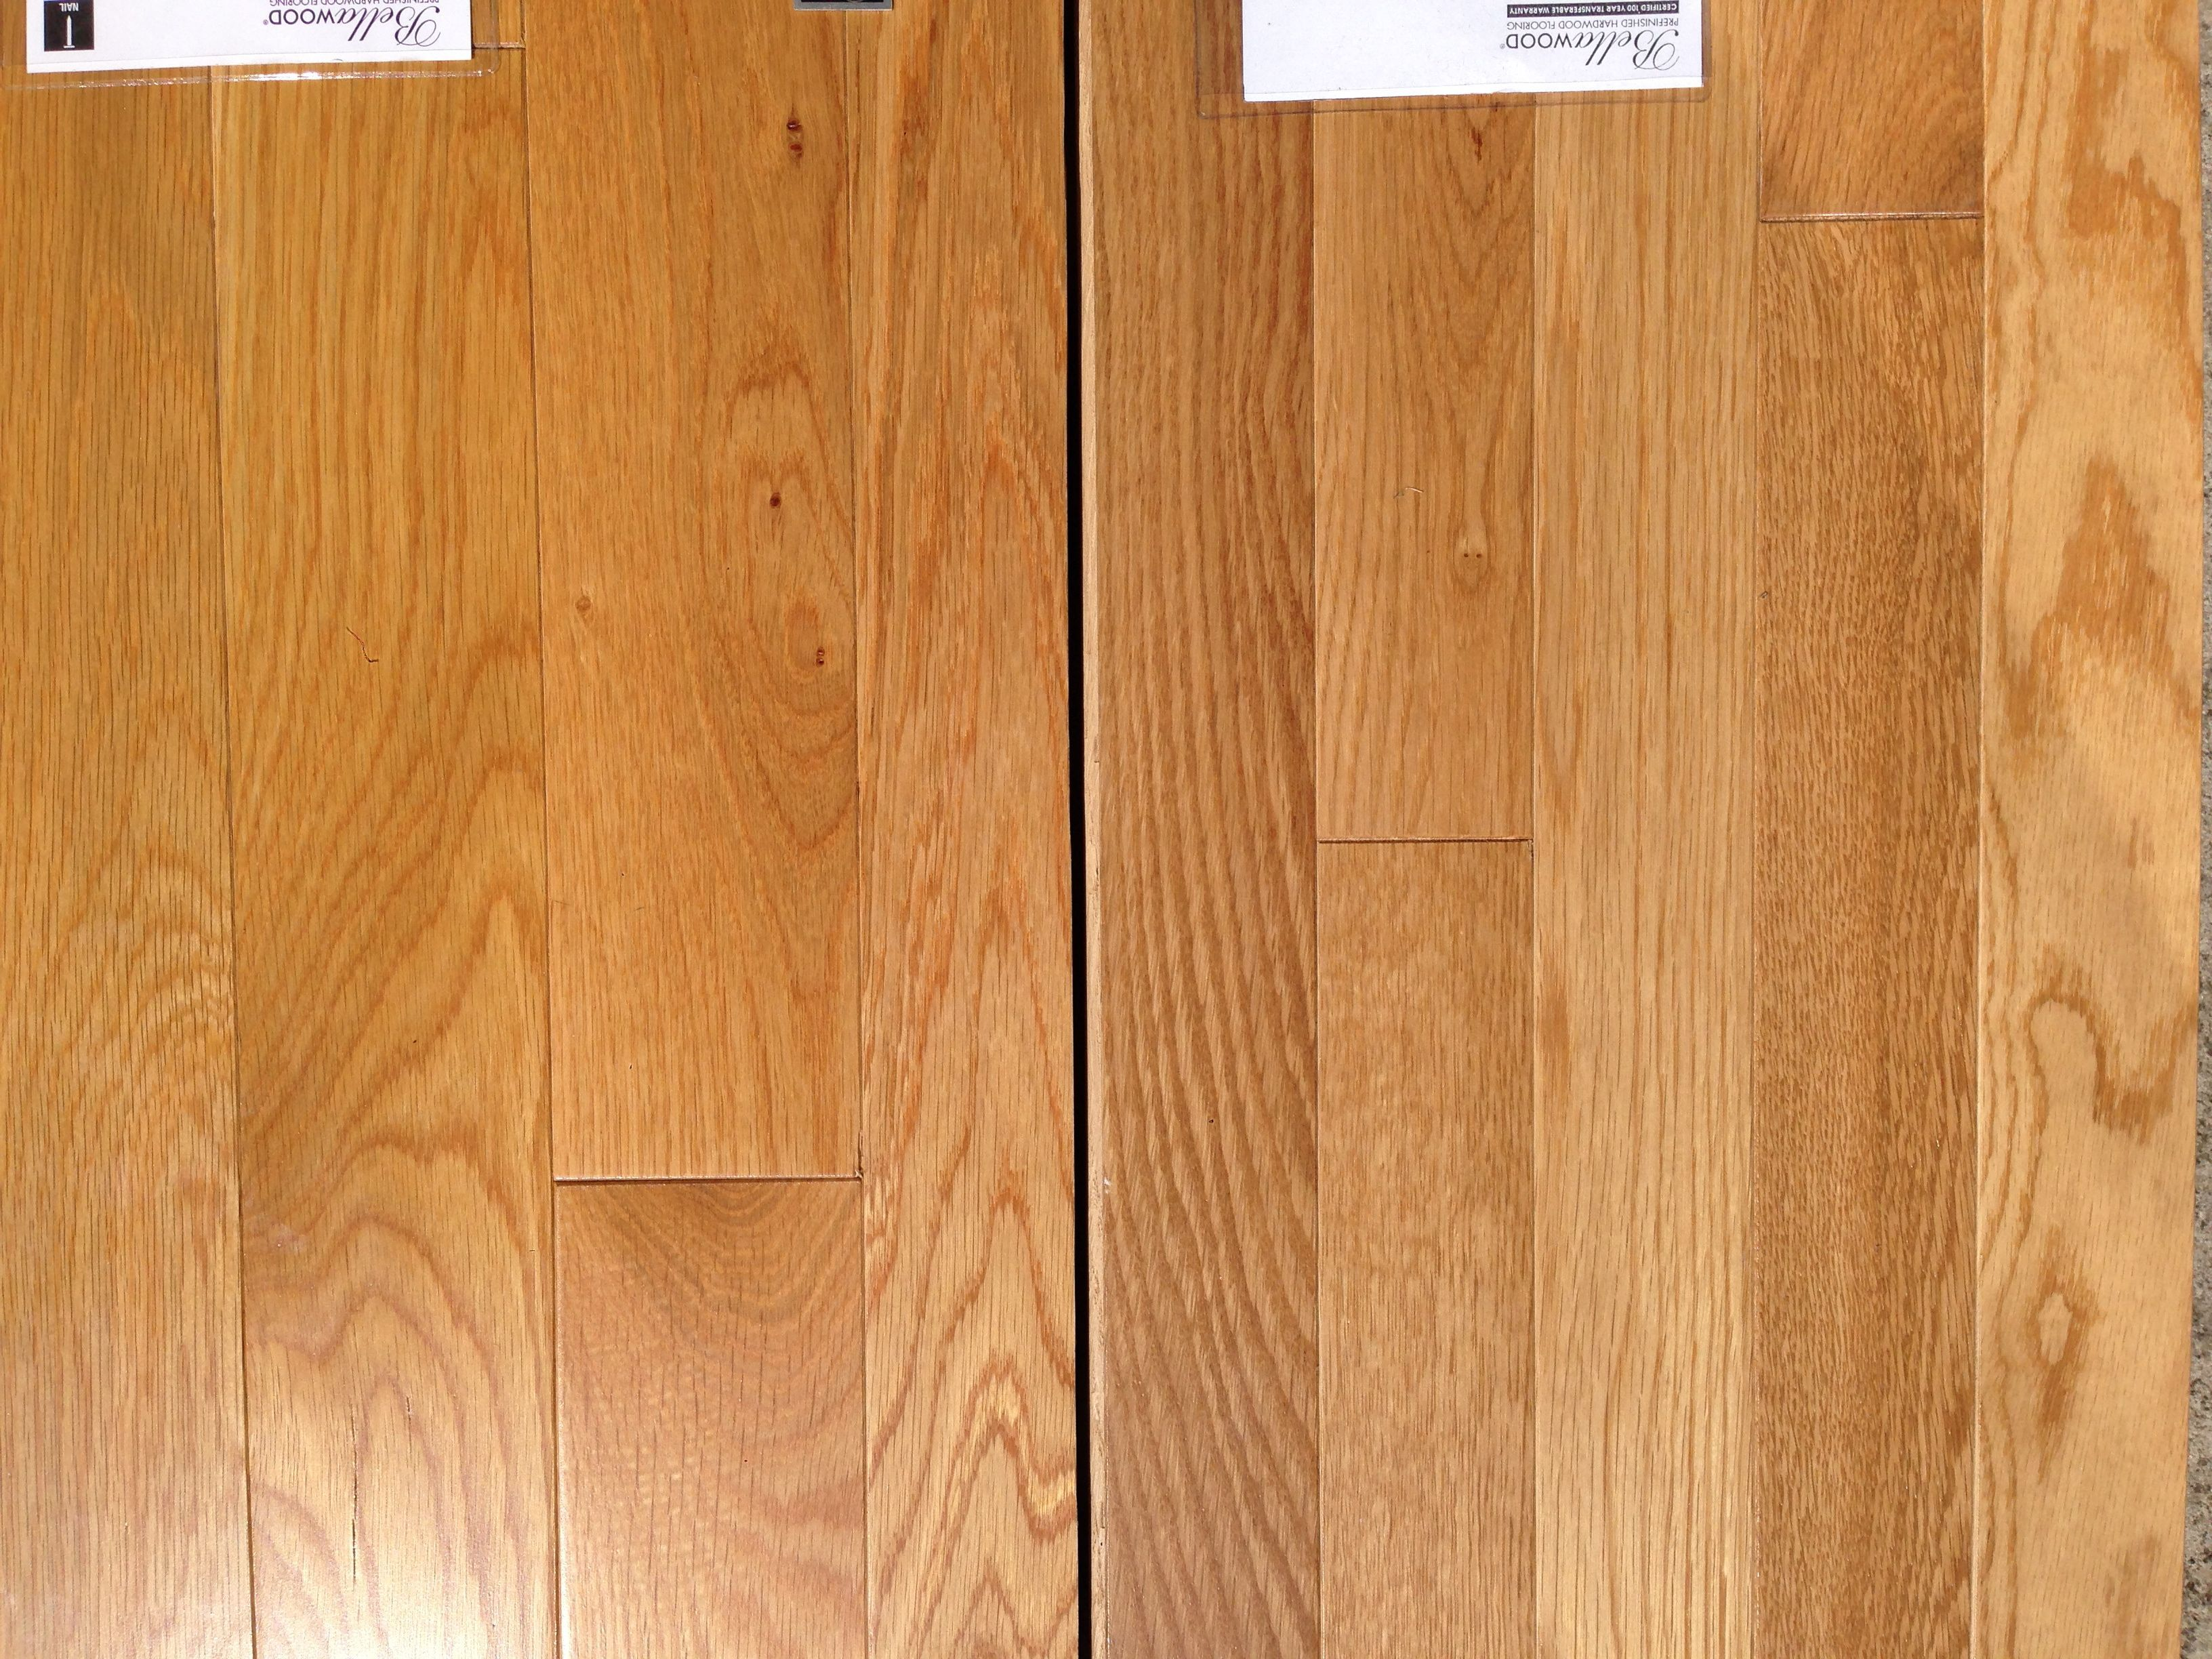 White Oak 2 1 4 Quot Vs 3 1 4 Quot Light Colored Wood Hardwood